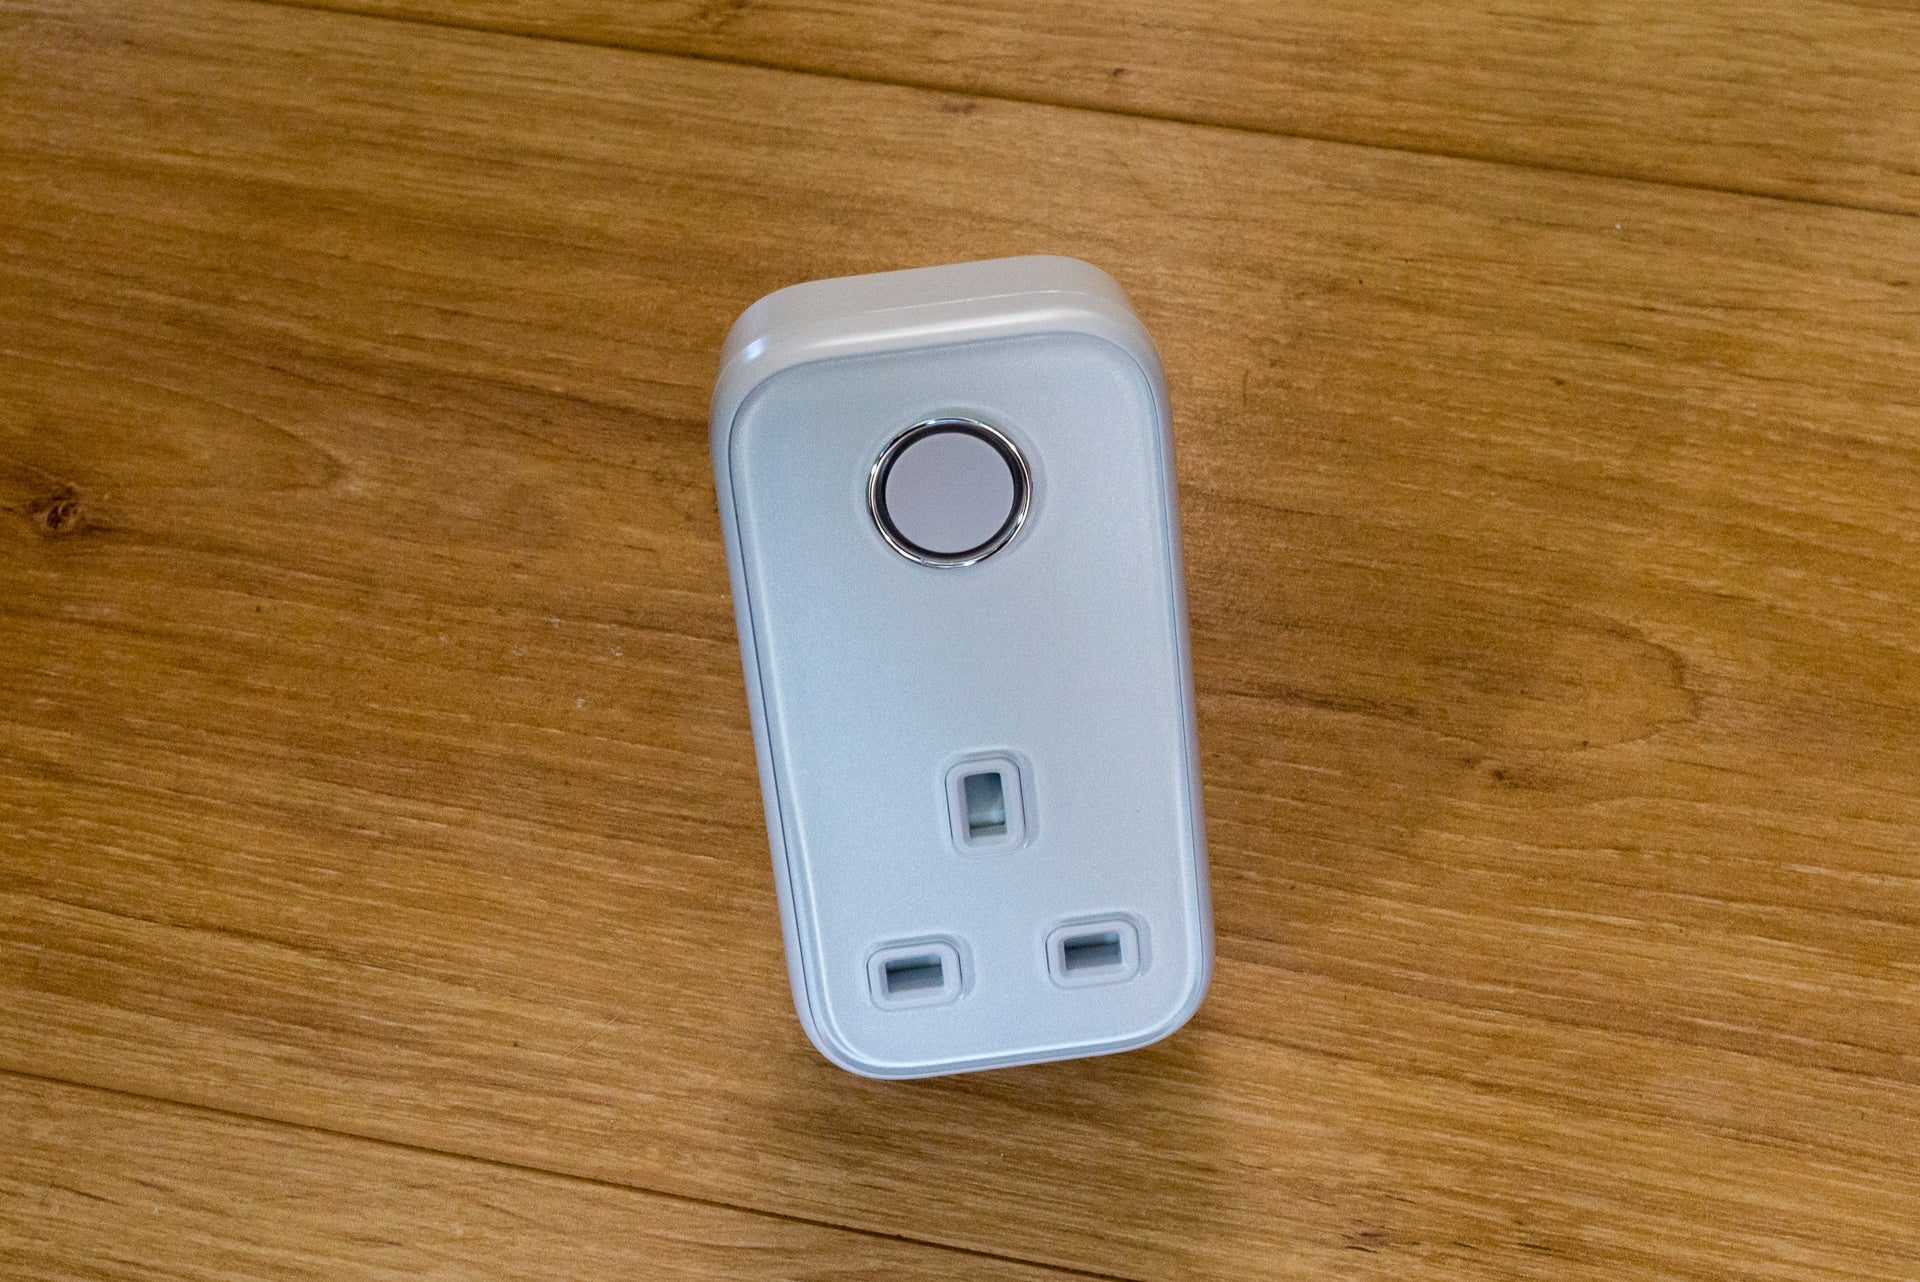 Best Smart Plugs 2019: The best sockets to make your home smarter